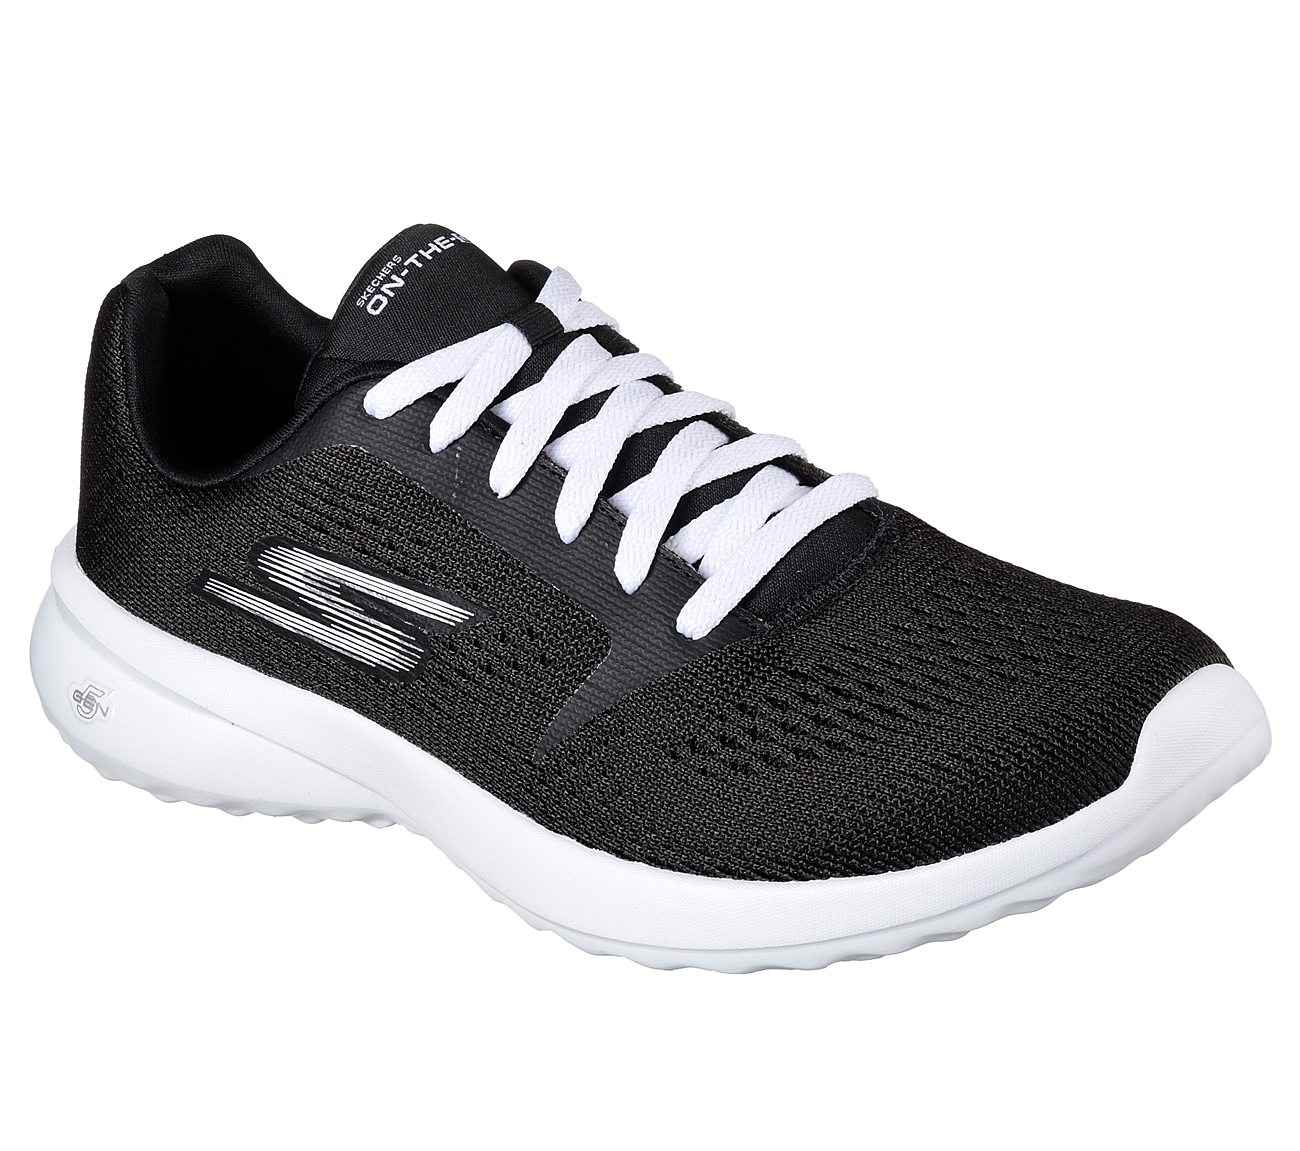 skechers shape up singapore